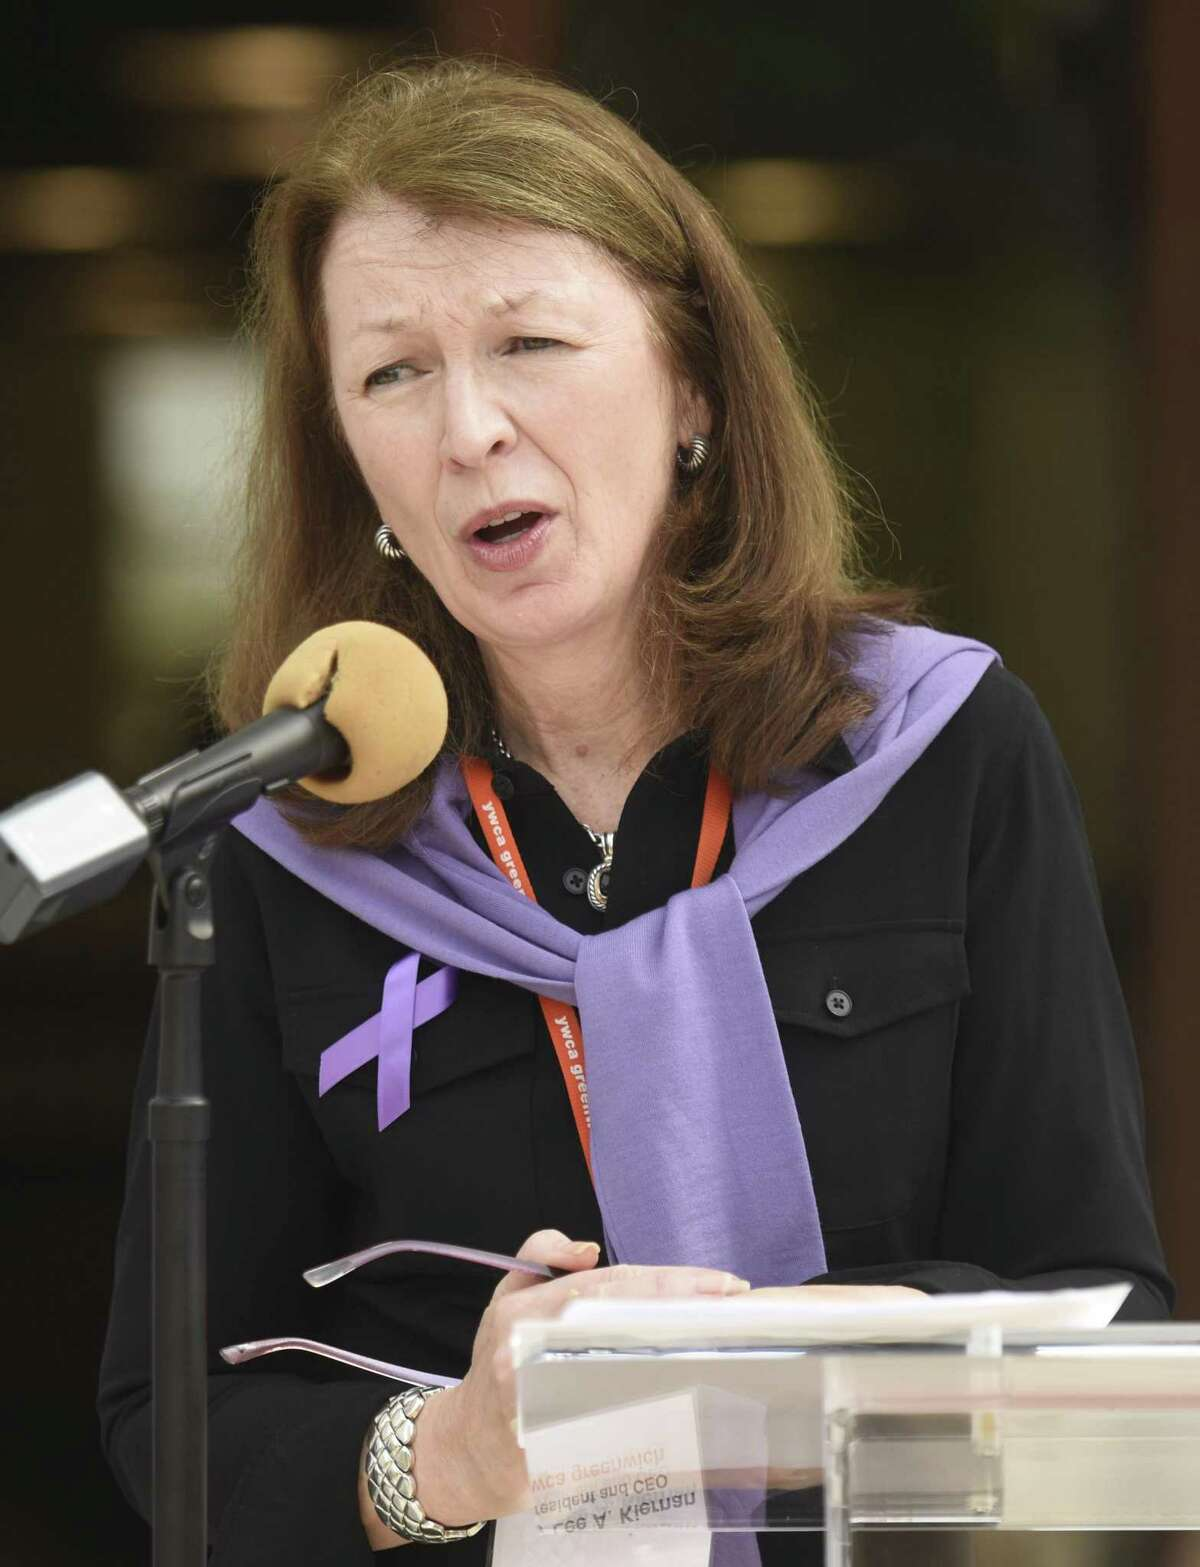 YWCA President and CEO Mary Lee A. Kiernan speaks during the Domestic Violence Awareness and Prevention Month Kickoff at Town Hall in Greenwich Oct. 2.